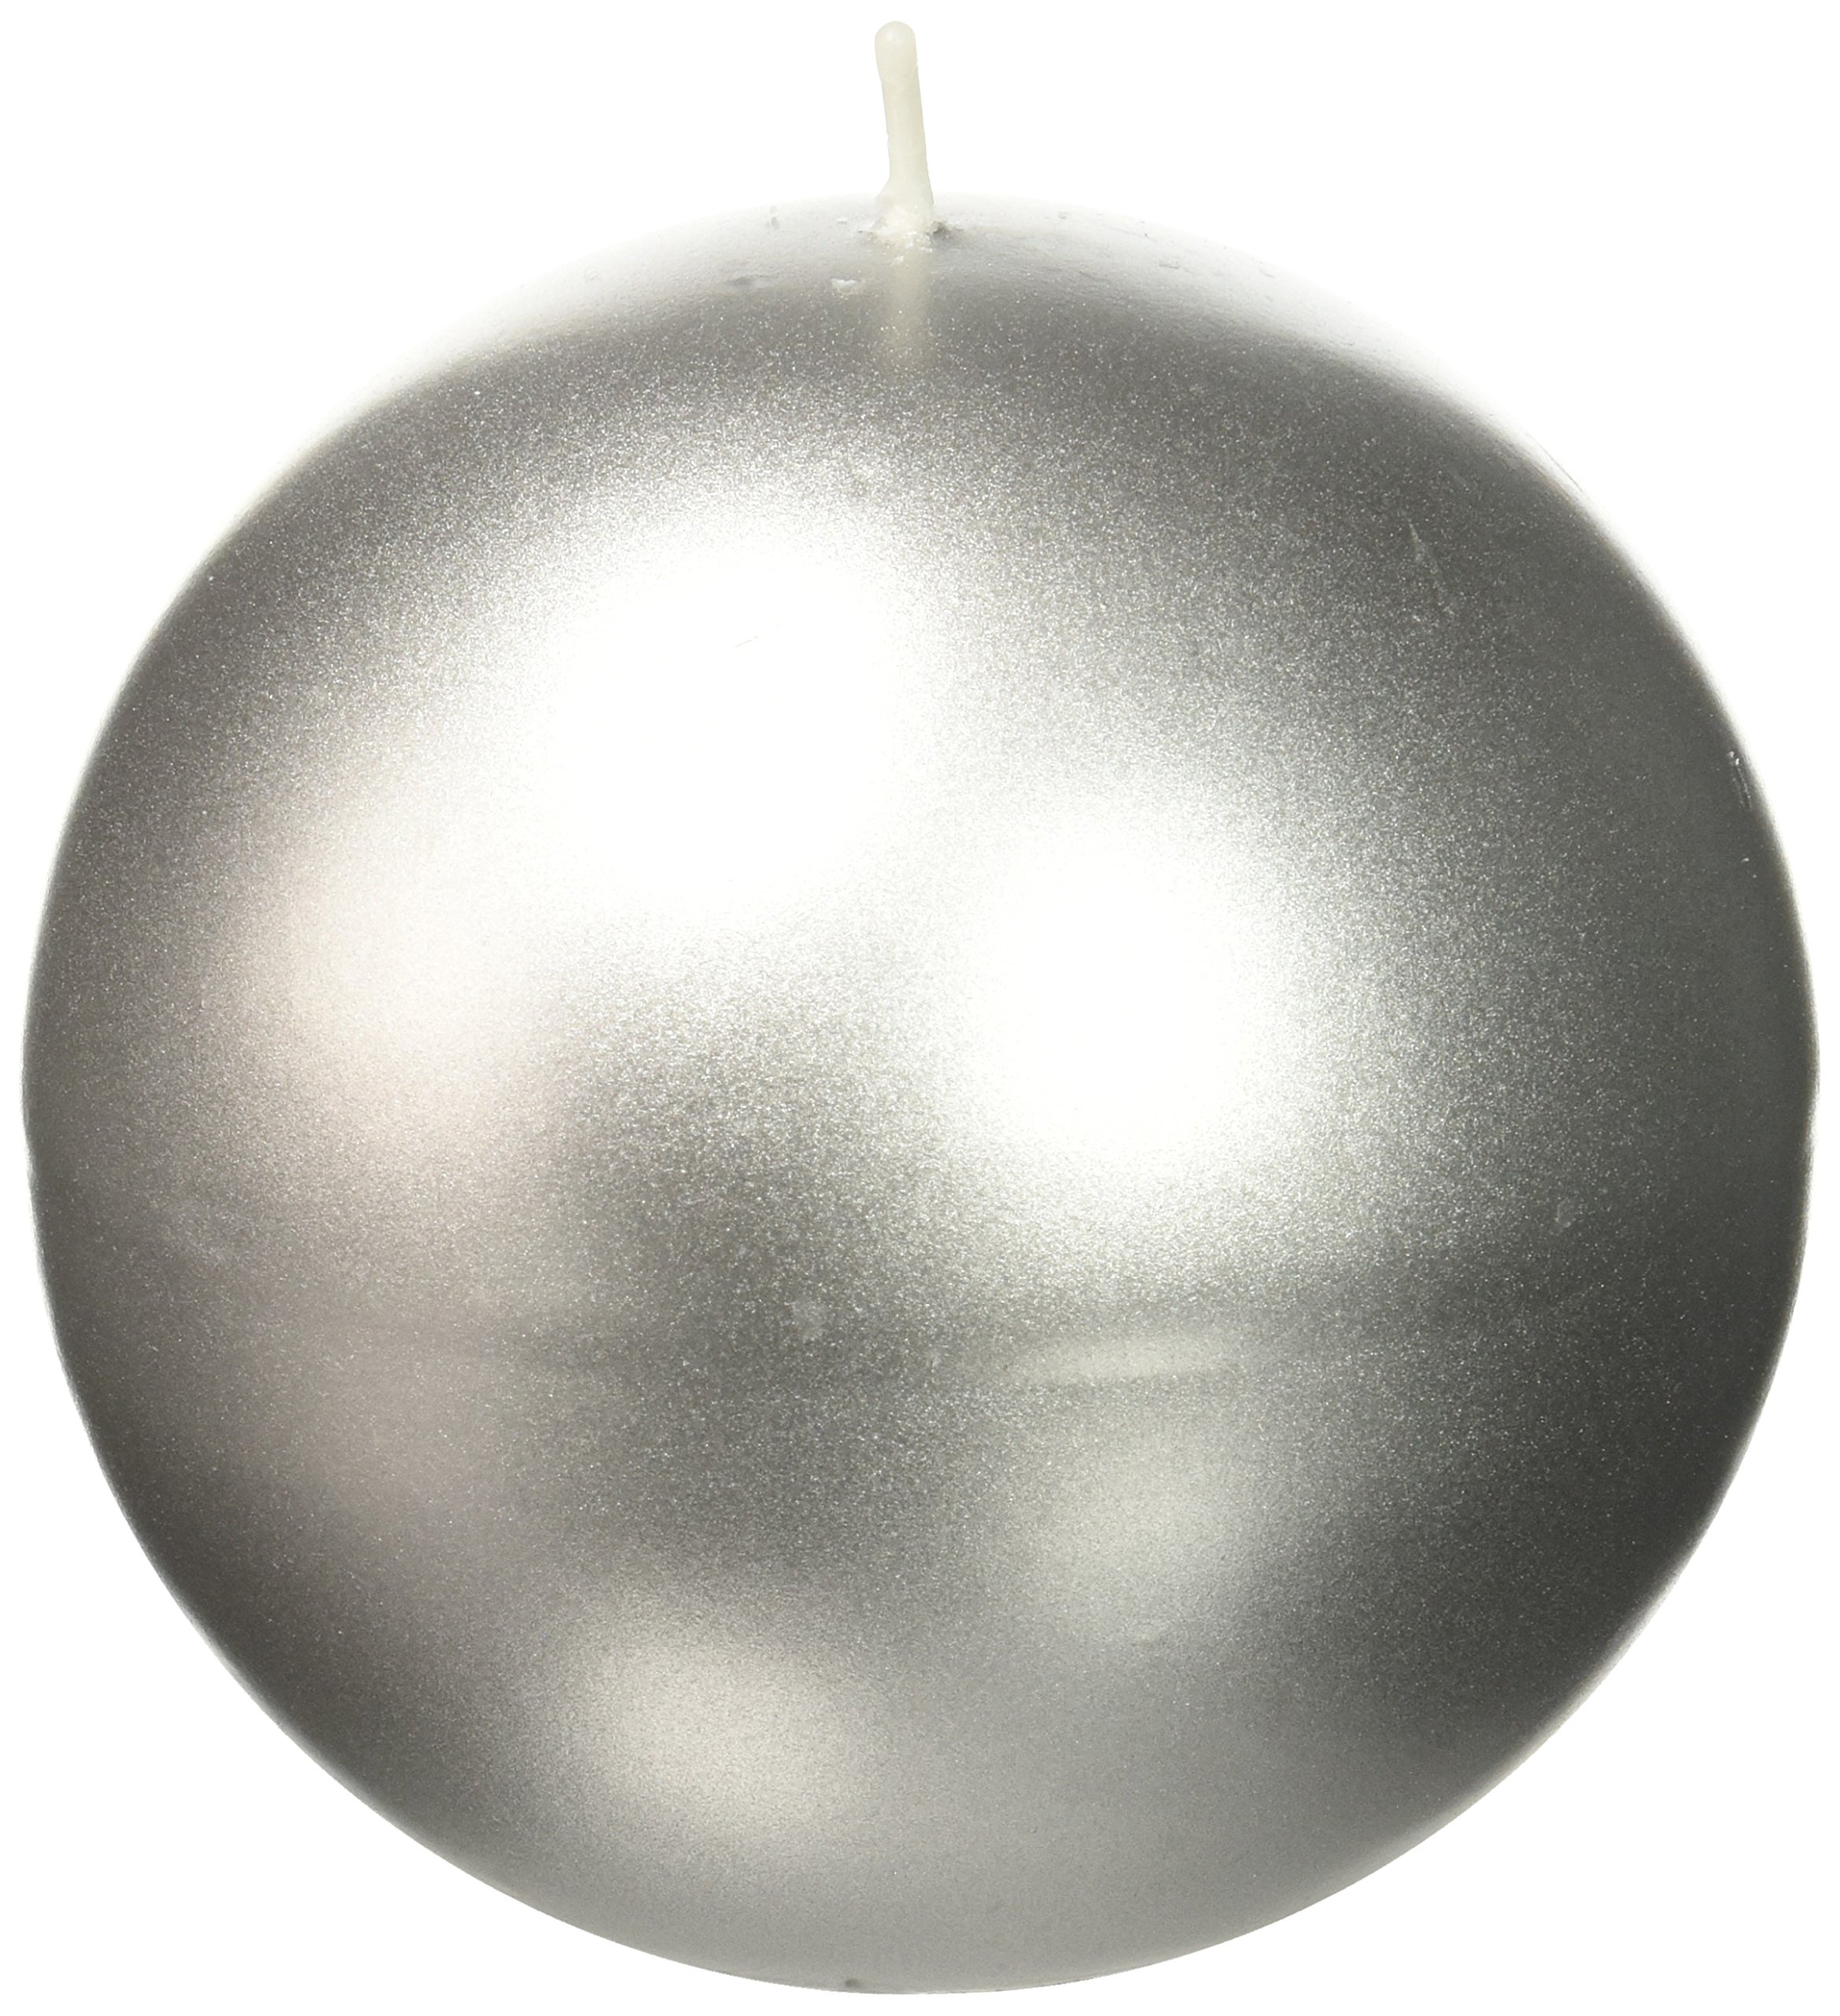 Zest Candle 2-Piece Ball Candles, 4-Inch, Metallic Silver by Zest Candle